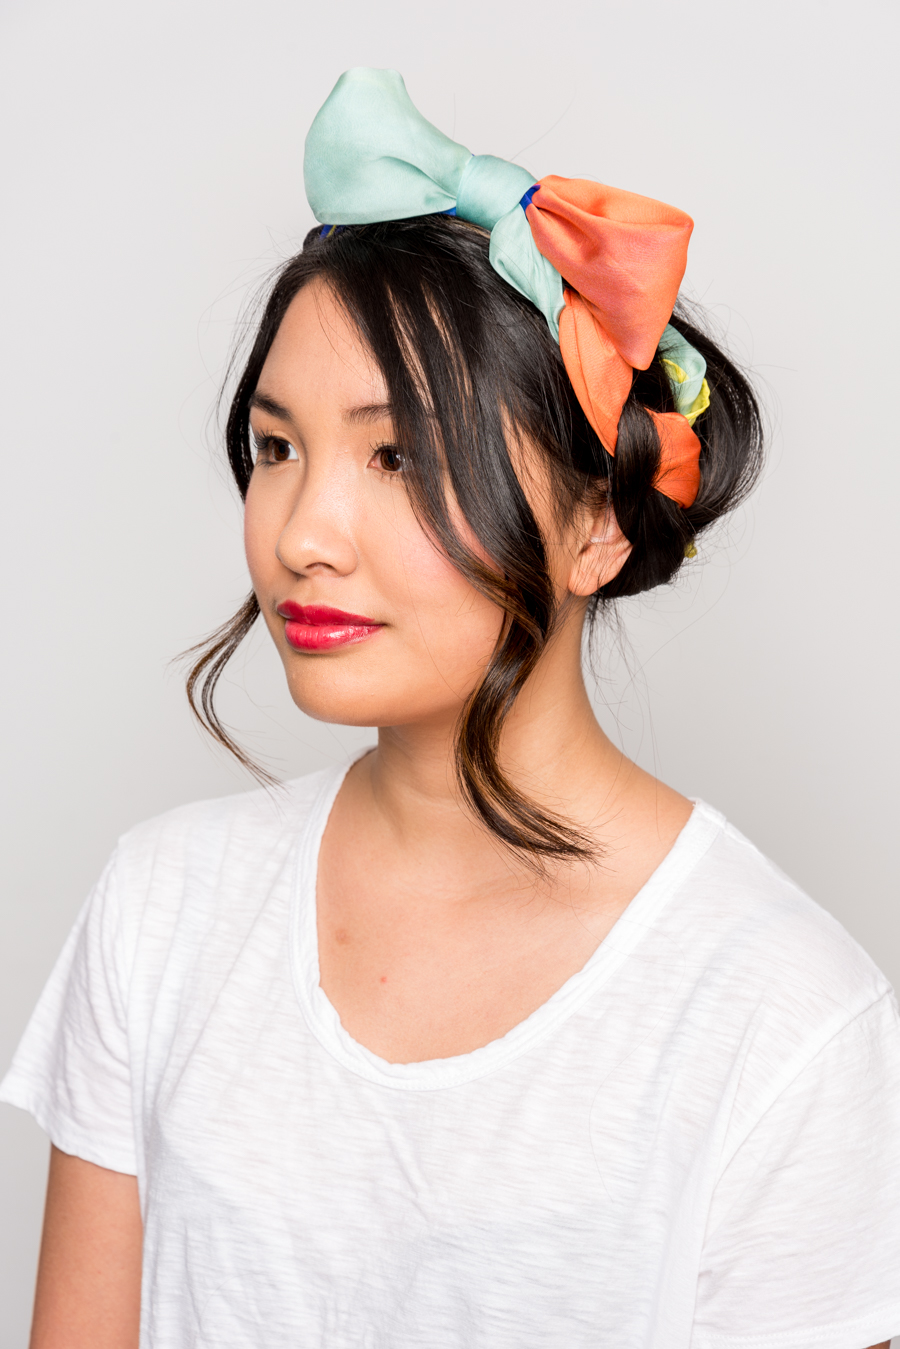 How To Use A Scarf For Stylish Summer Hair スカーフを使った簡単ヘアアレンジ 14